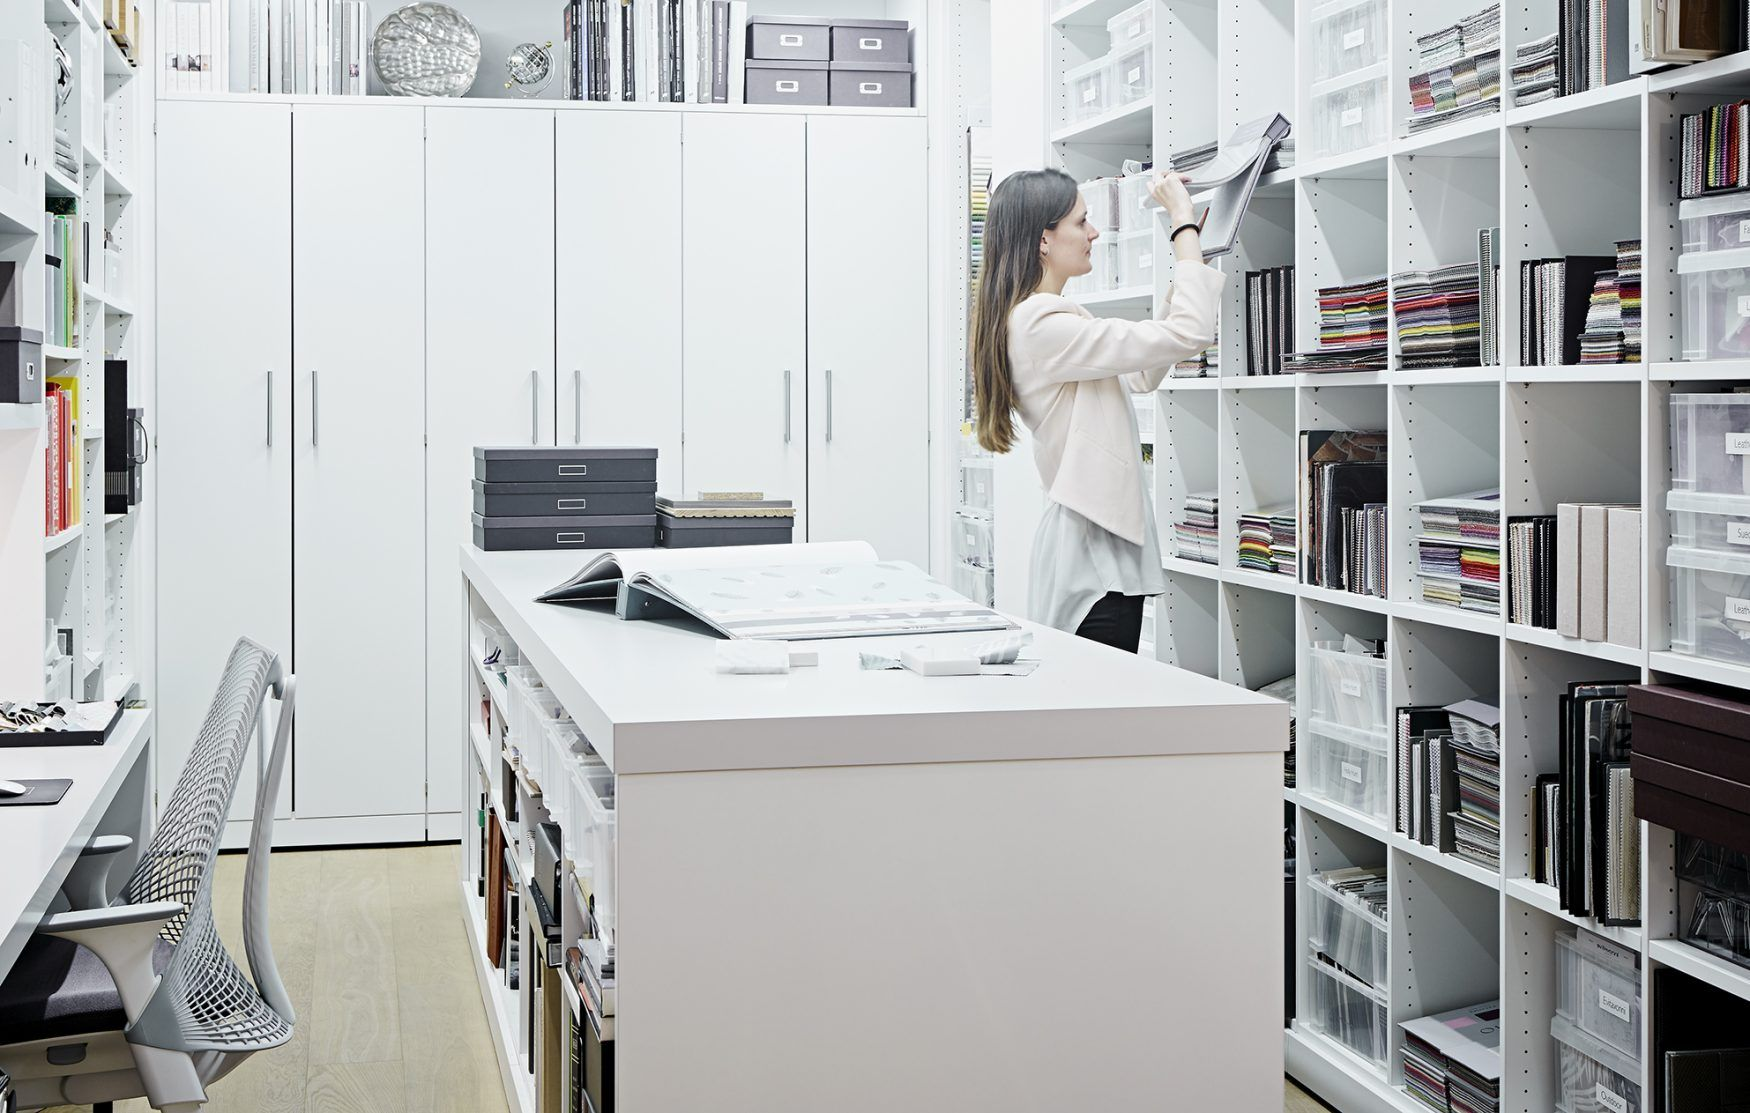 Library and specification room at taylor howes - Interior design materials and specifications ...